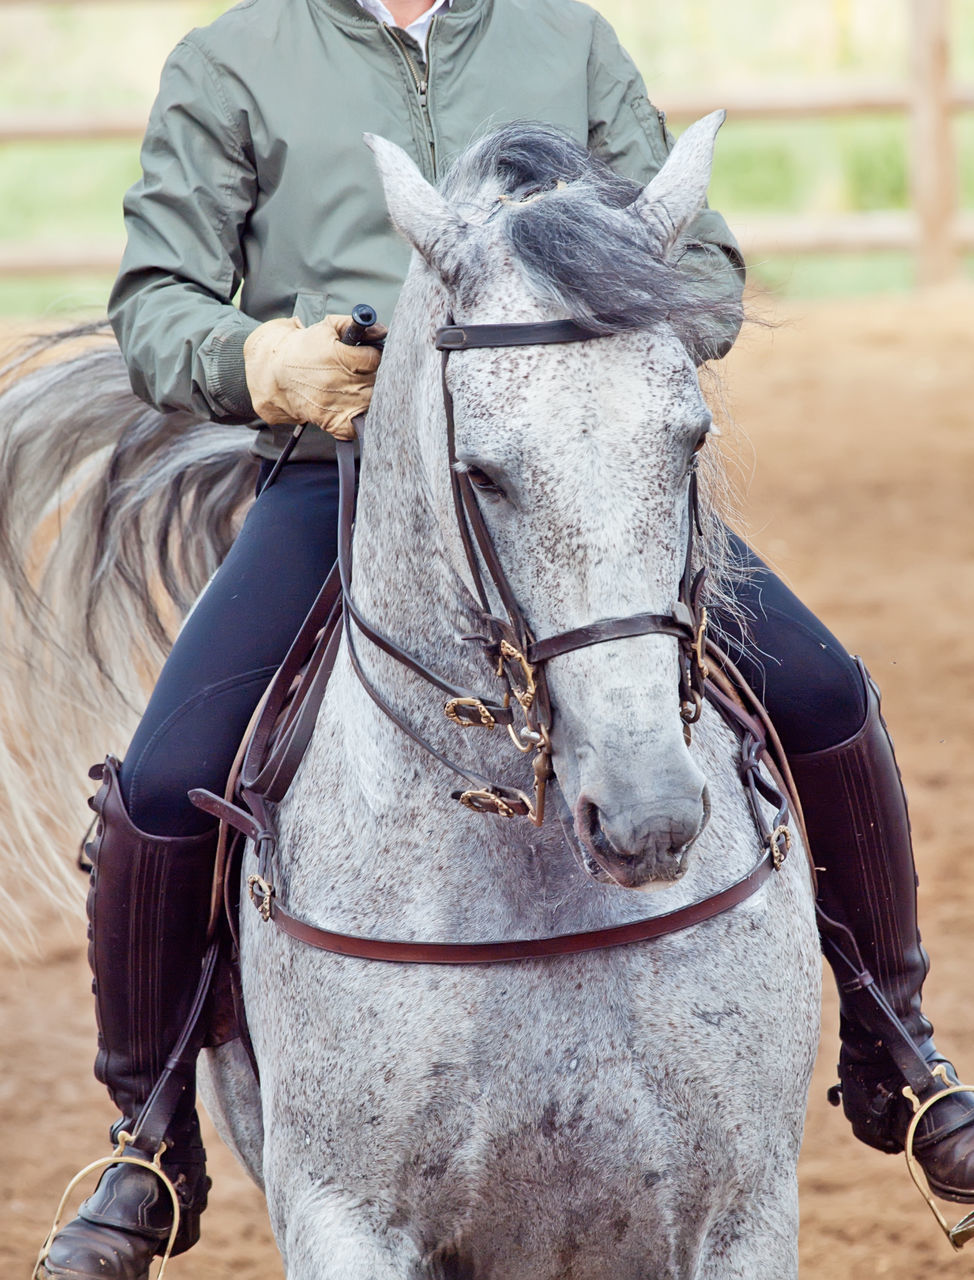 horse, one animal, horseback riding, one person, bridle, domestic animals, mammal, front view, real people, field, outdoors, day, men, people